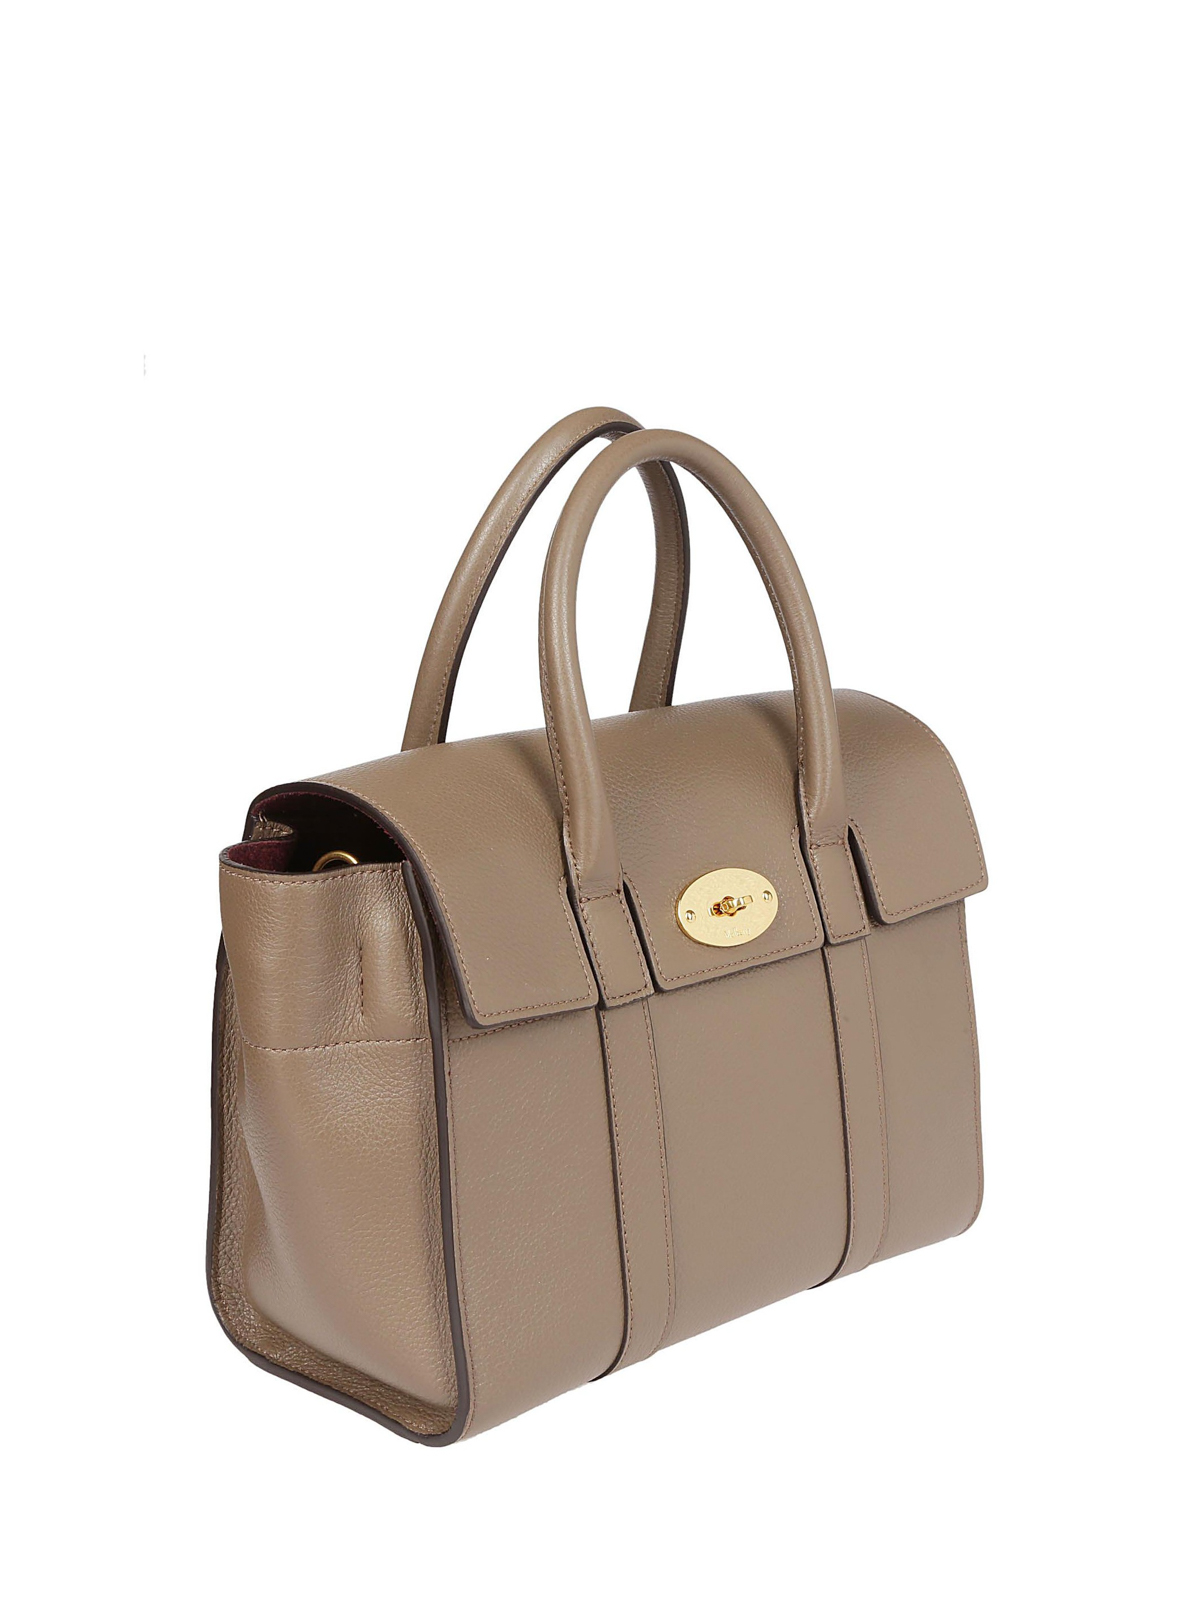 0186d3e9da4d MULBERRY  bowling bags online - Small Bayswater clay grain leather bag